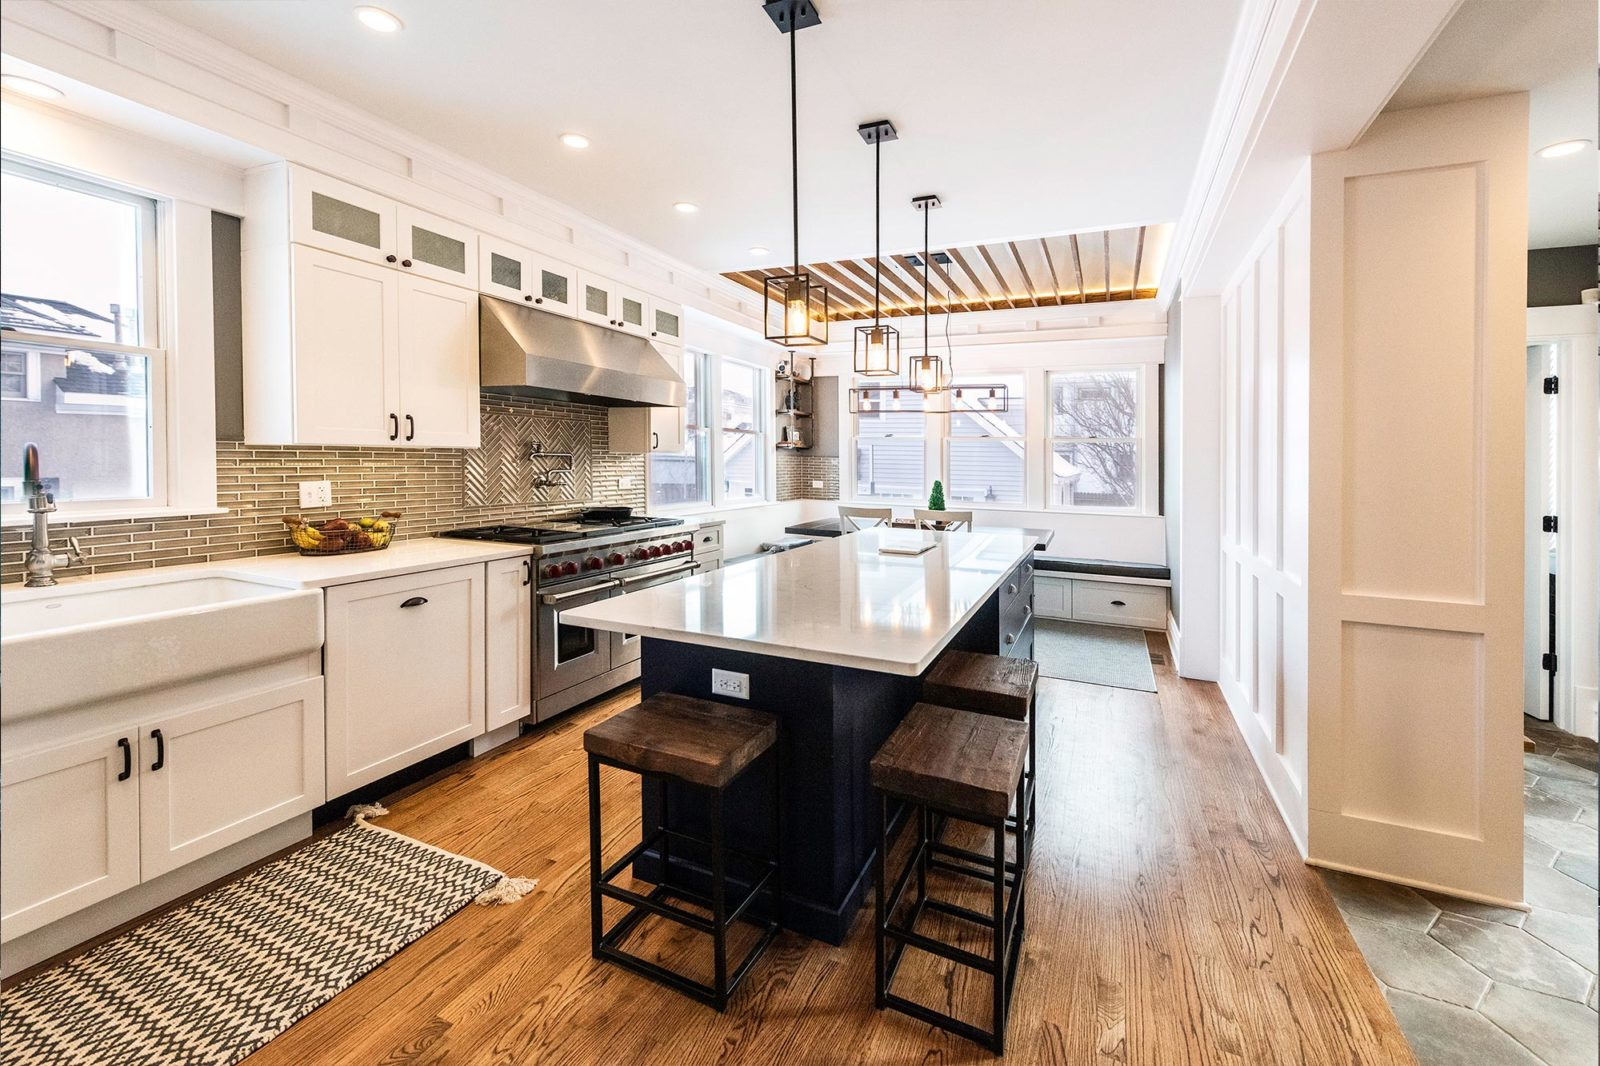 livco kitchen remodel large black island white countertops & cabinets large farmhouse sink